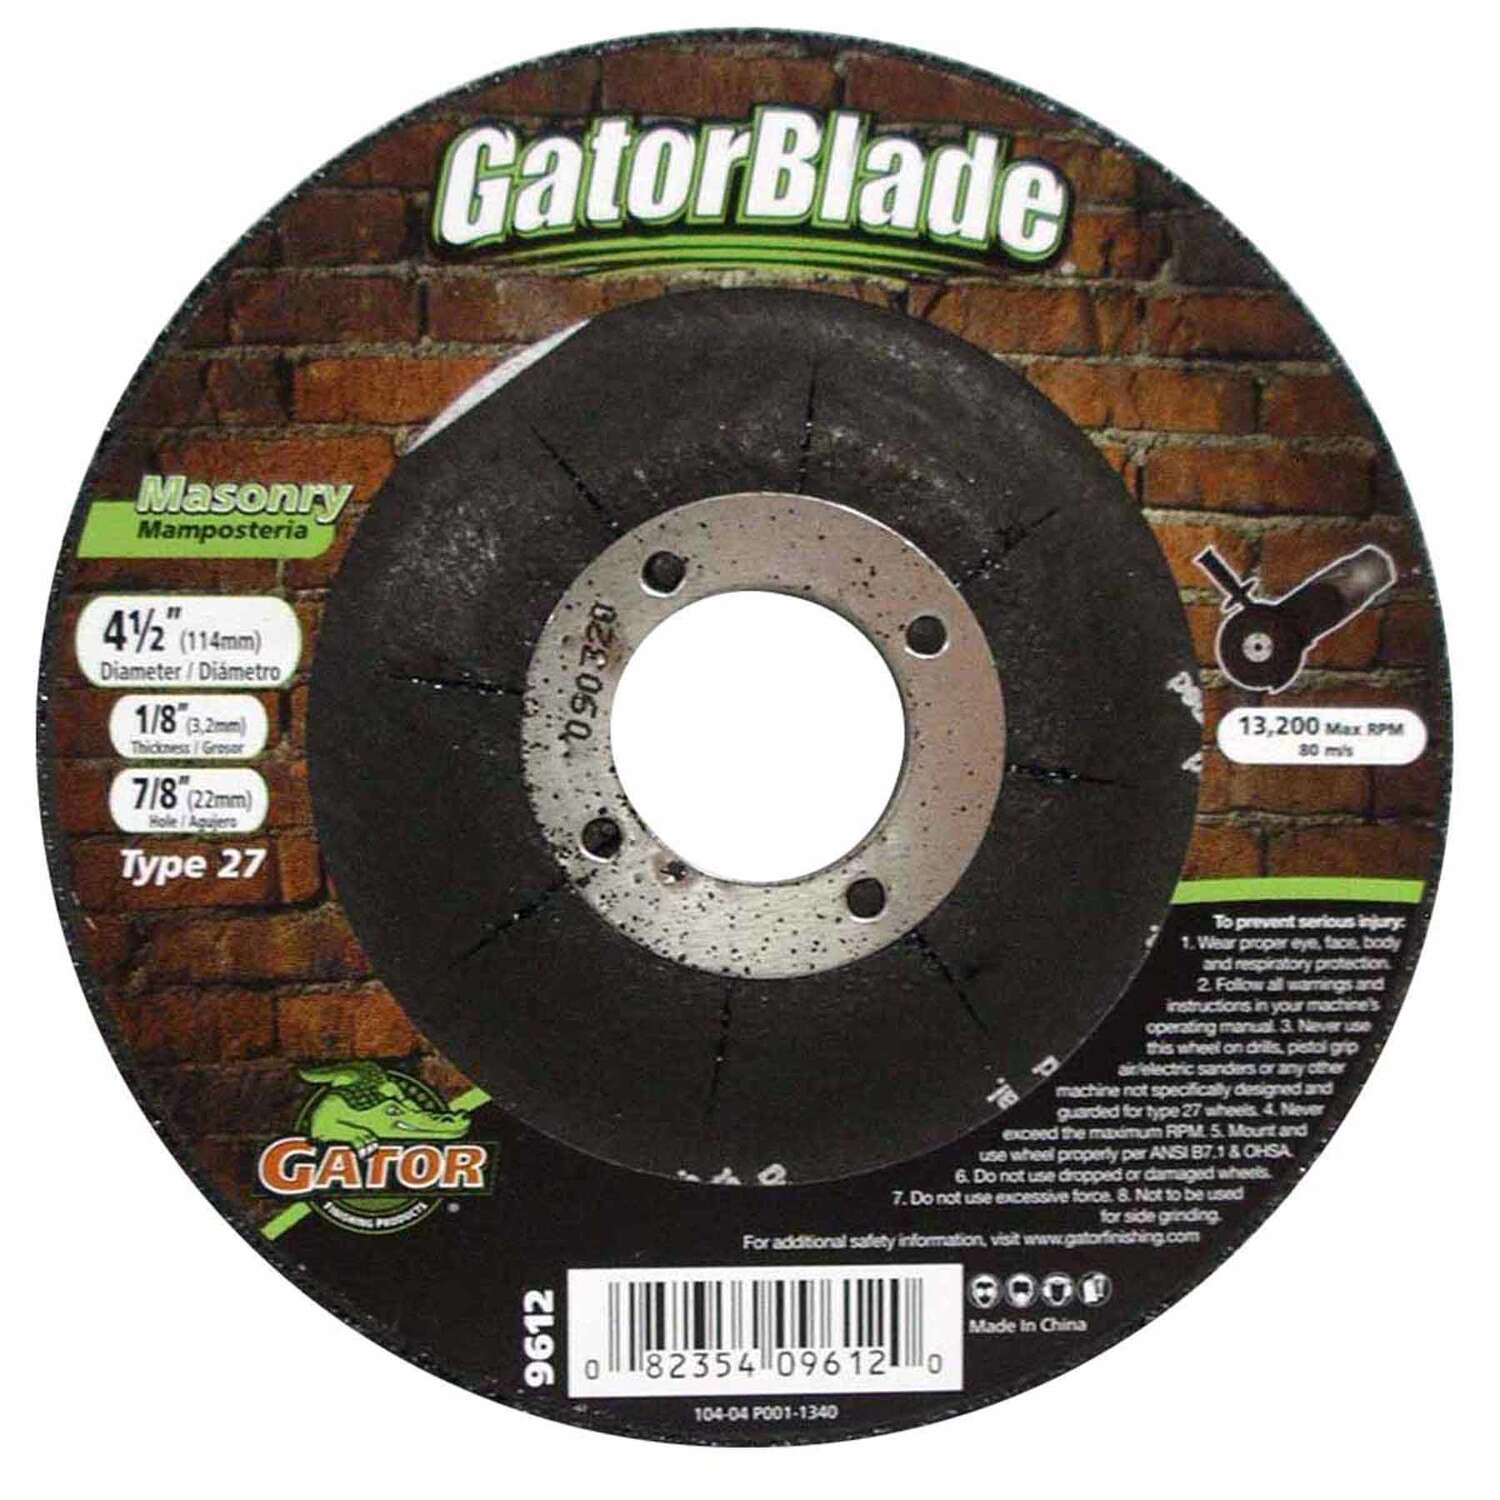 Gator  4-1/2 in. Dia. x 1/8 in. thick  x 5/8 in.   Masonry Grinding Wheel  1 pc.